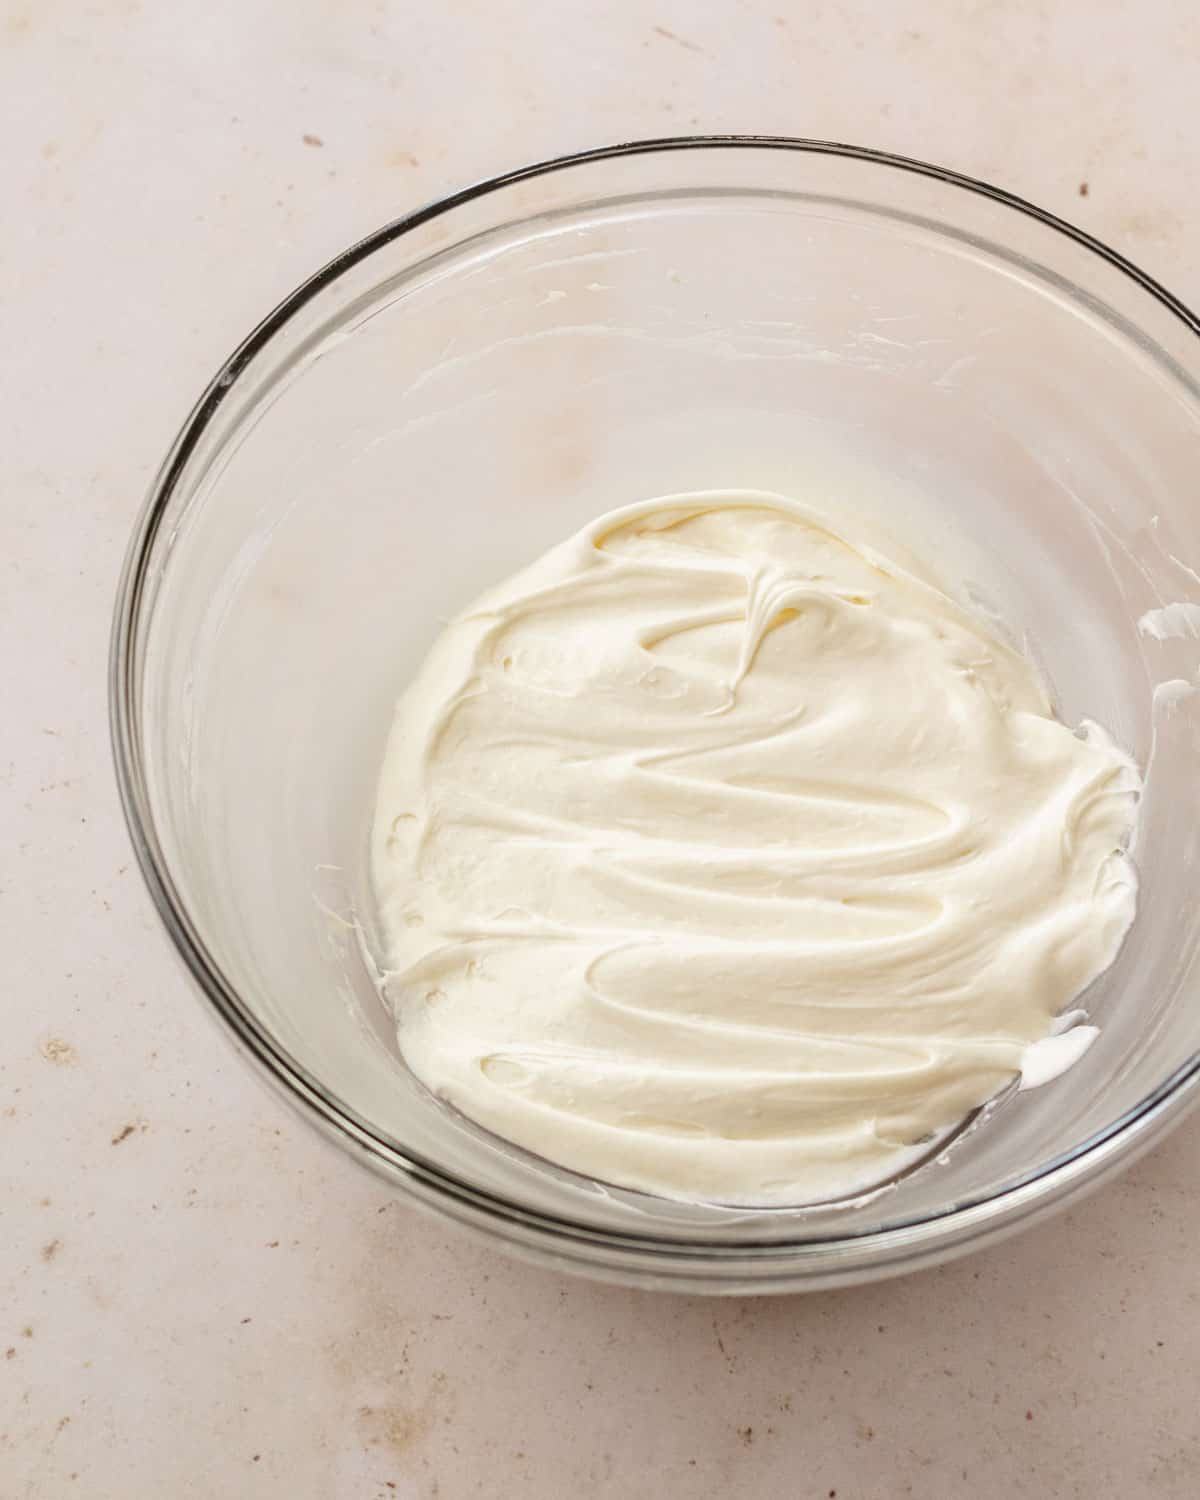 super smooth cream cheese icing in a bowl, ready to be piped onto brownies.